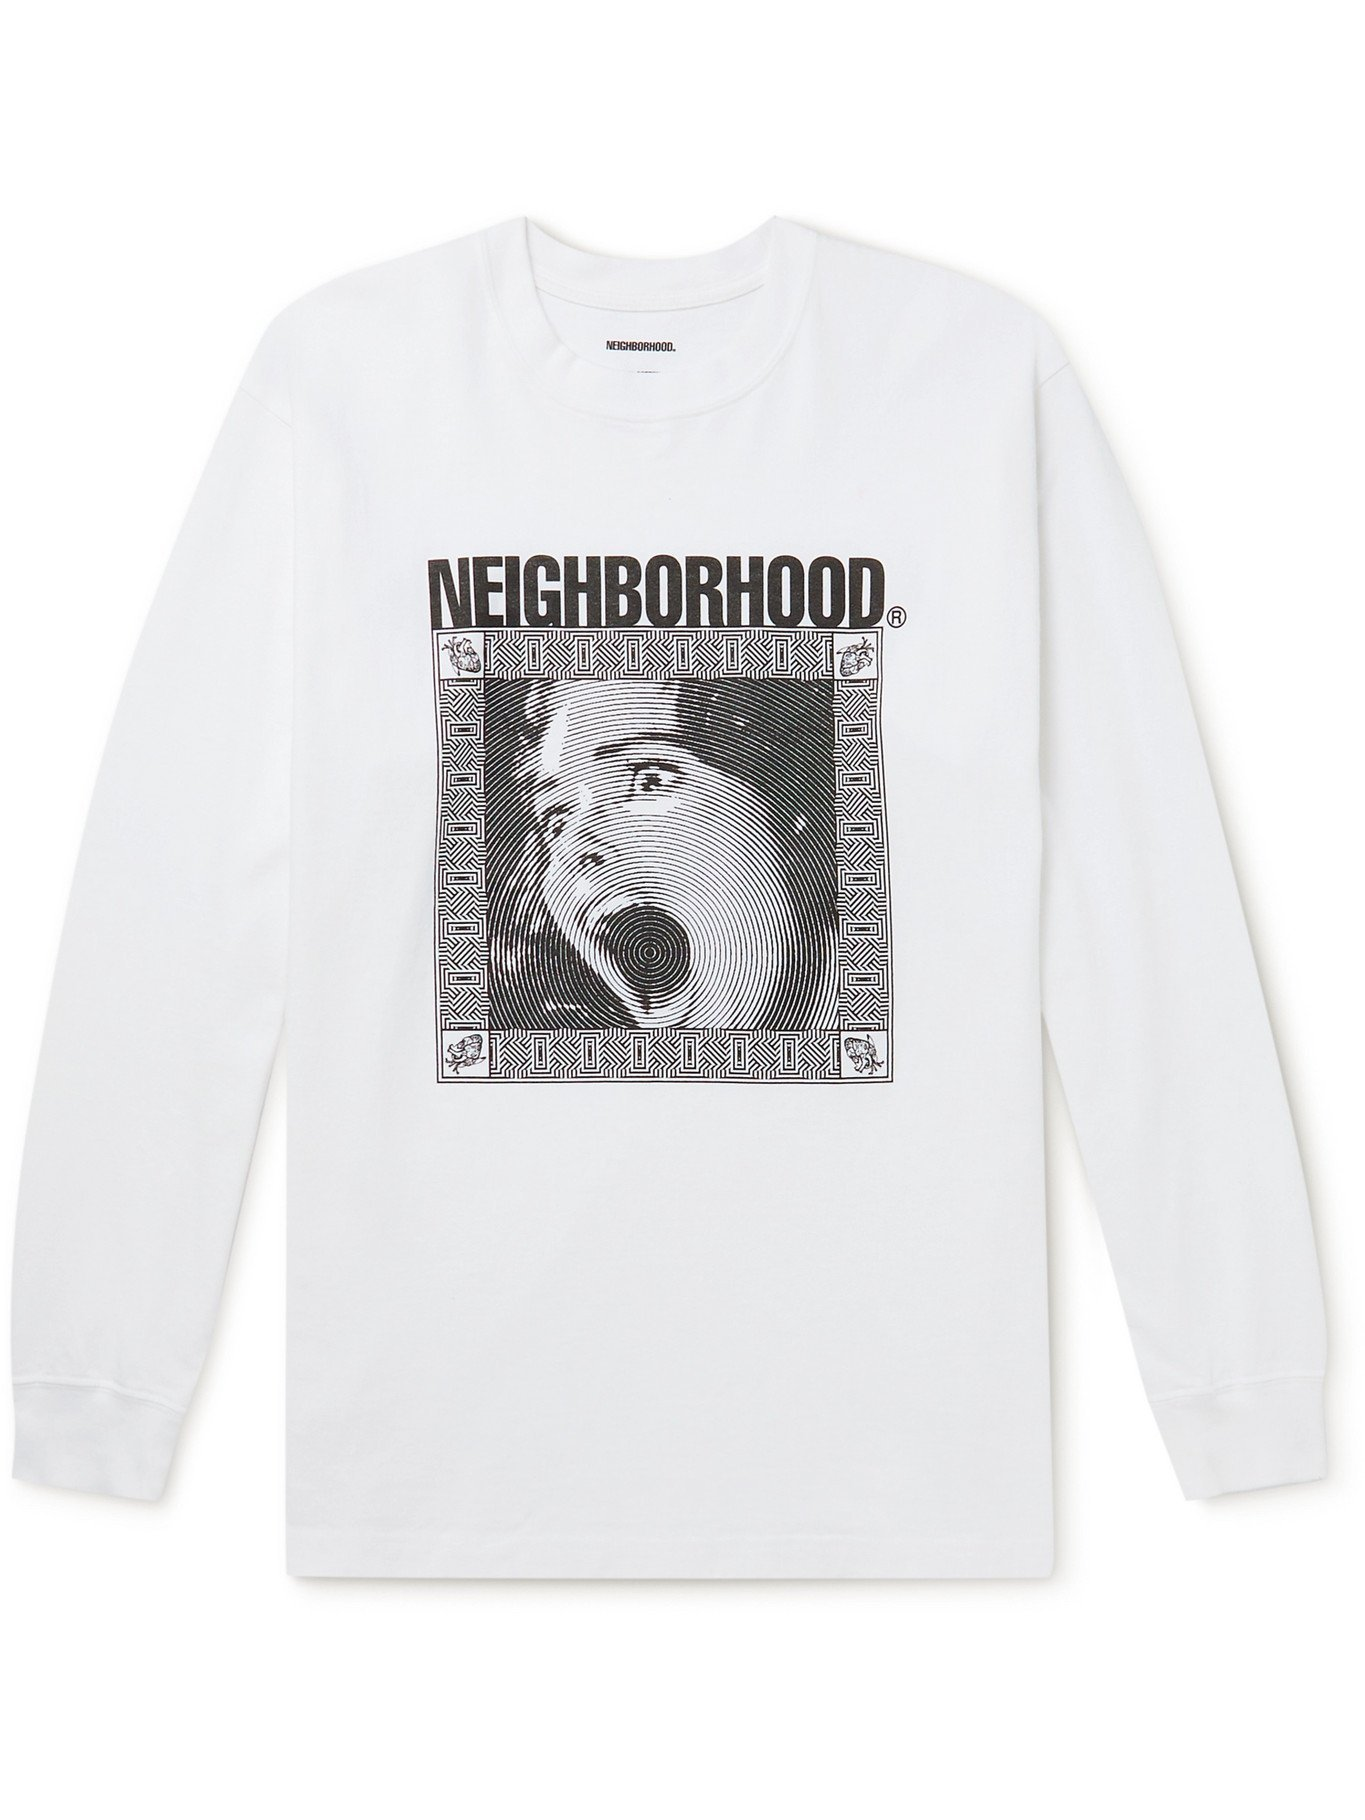 Photo: NEIGHBORHOOD - Printed Cotton-Jersey T-Shirt - White - S